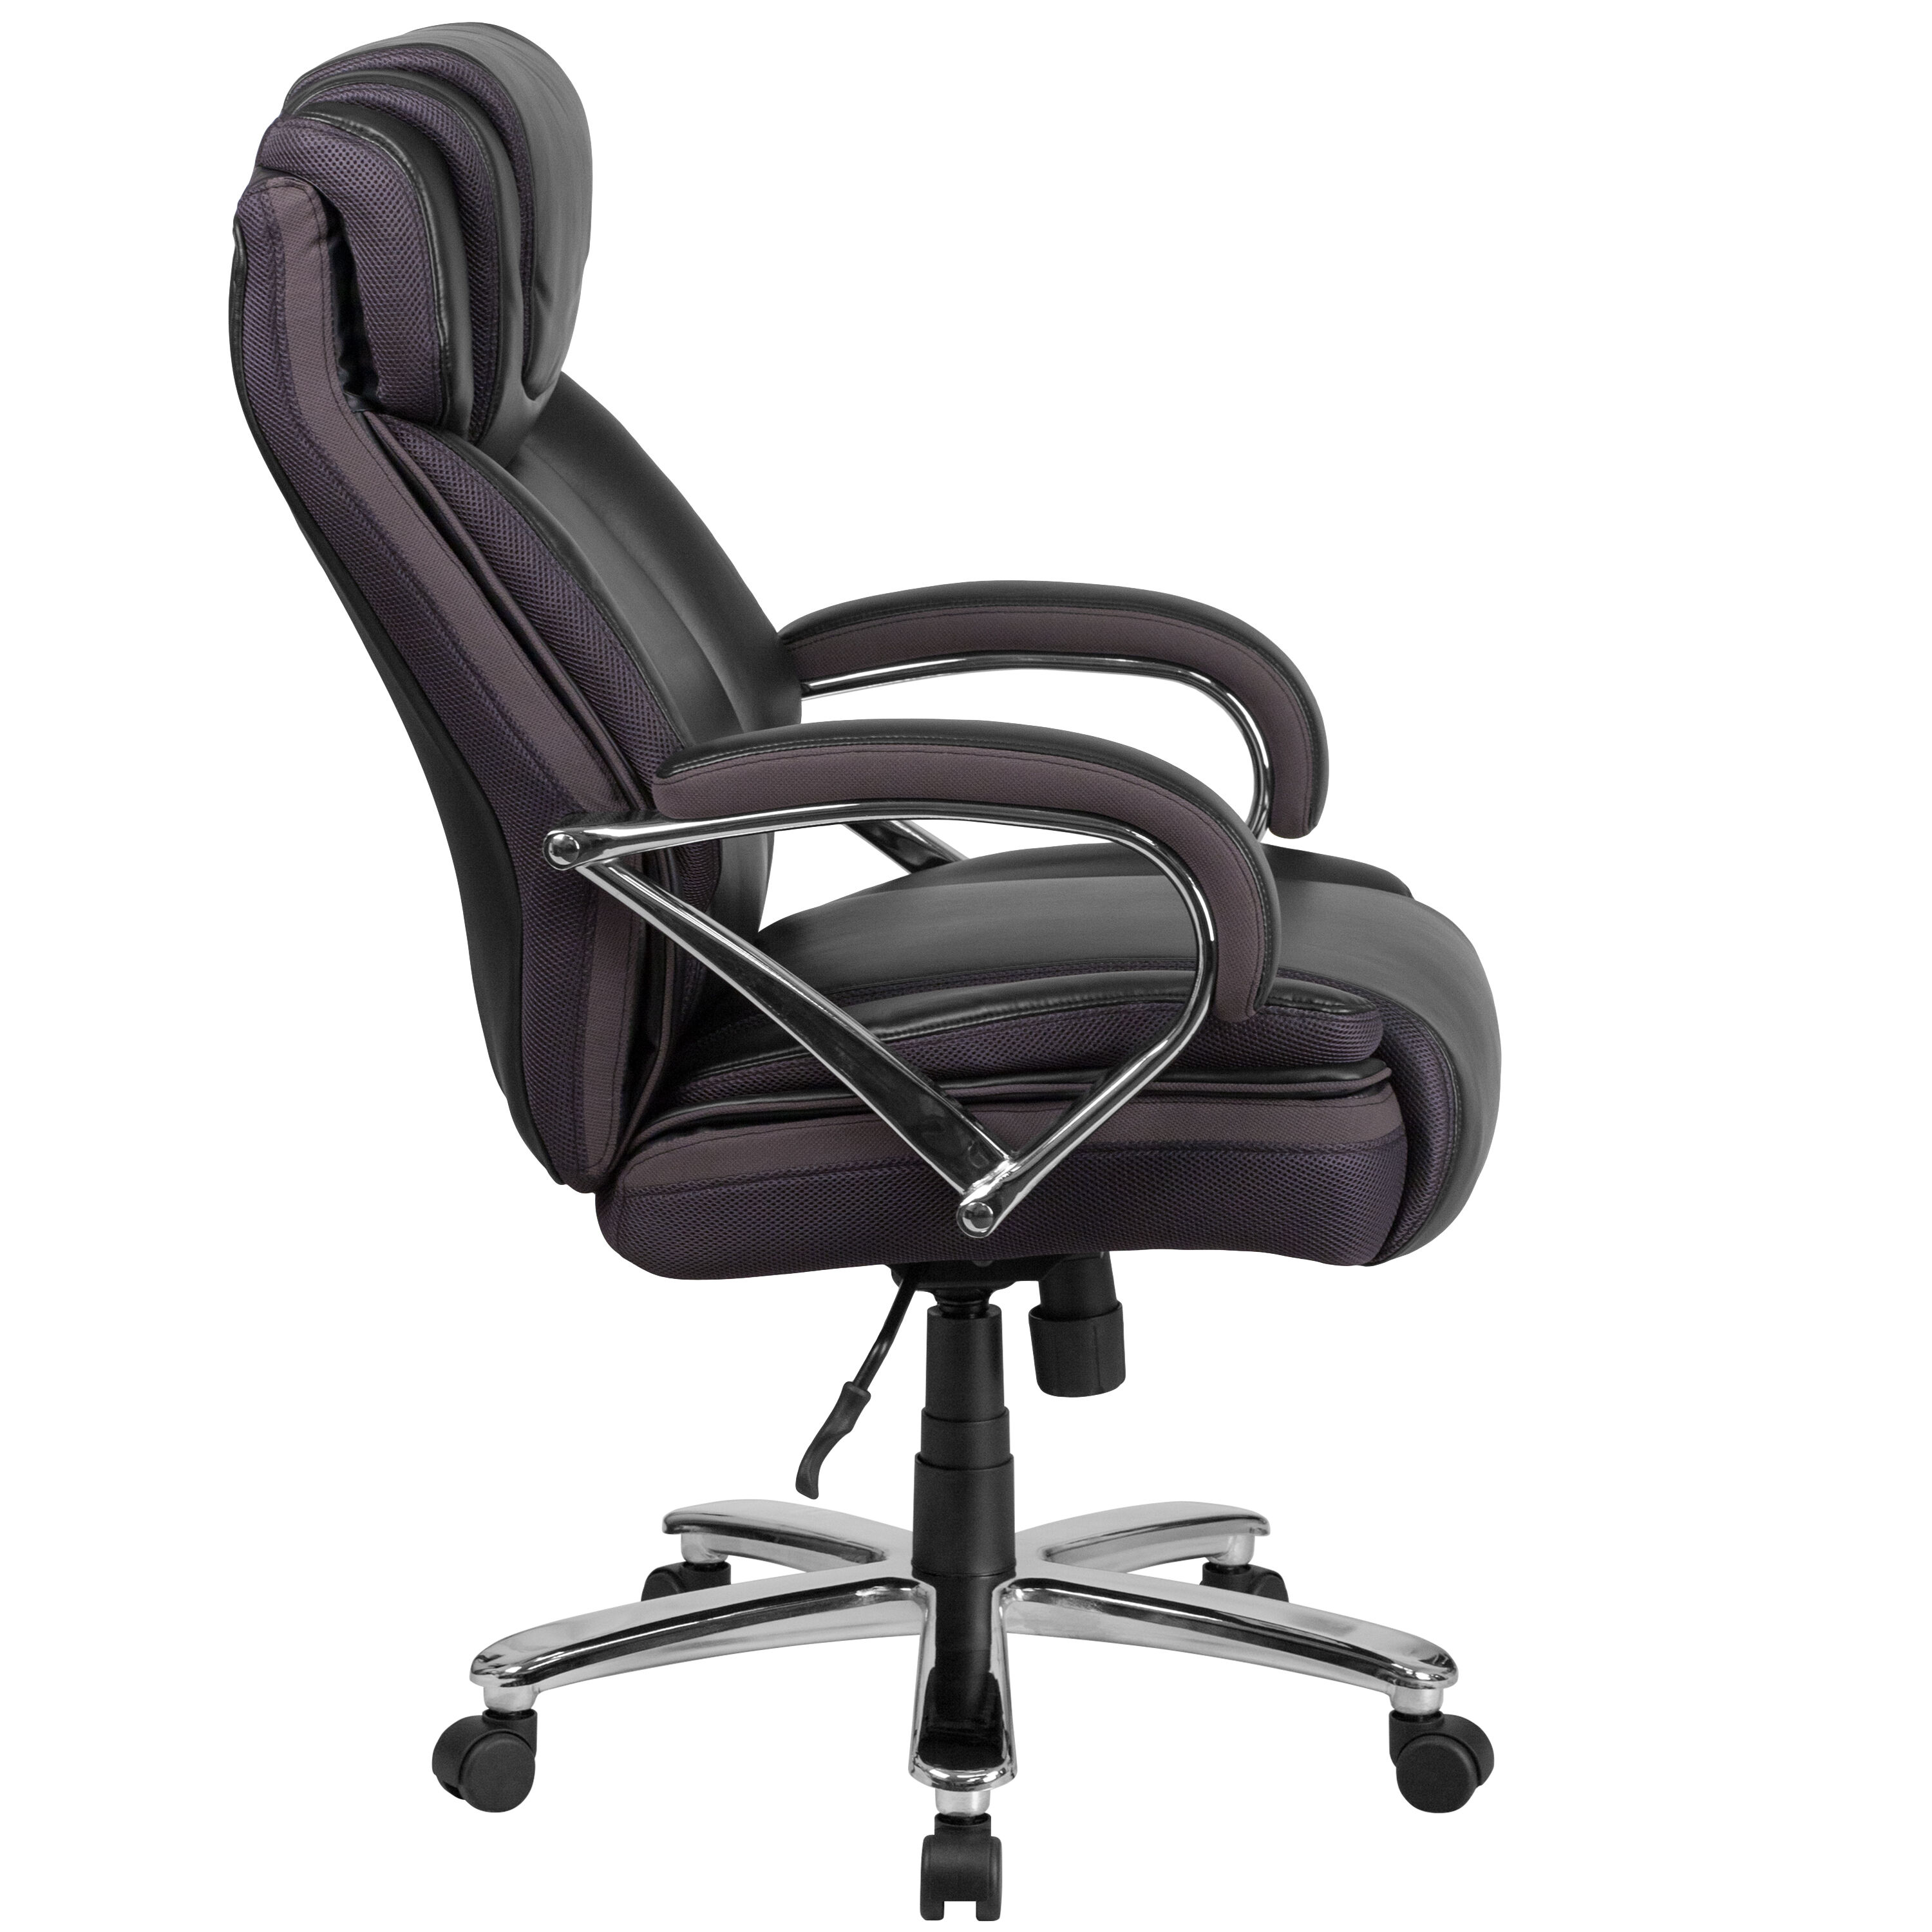 Rated Black Leather Executive Swivel Chair With ...